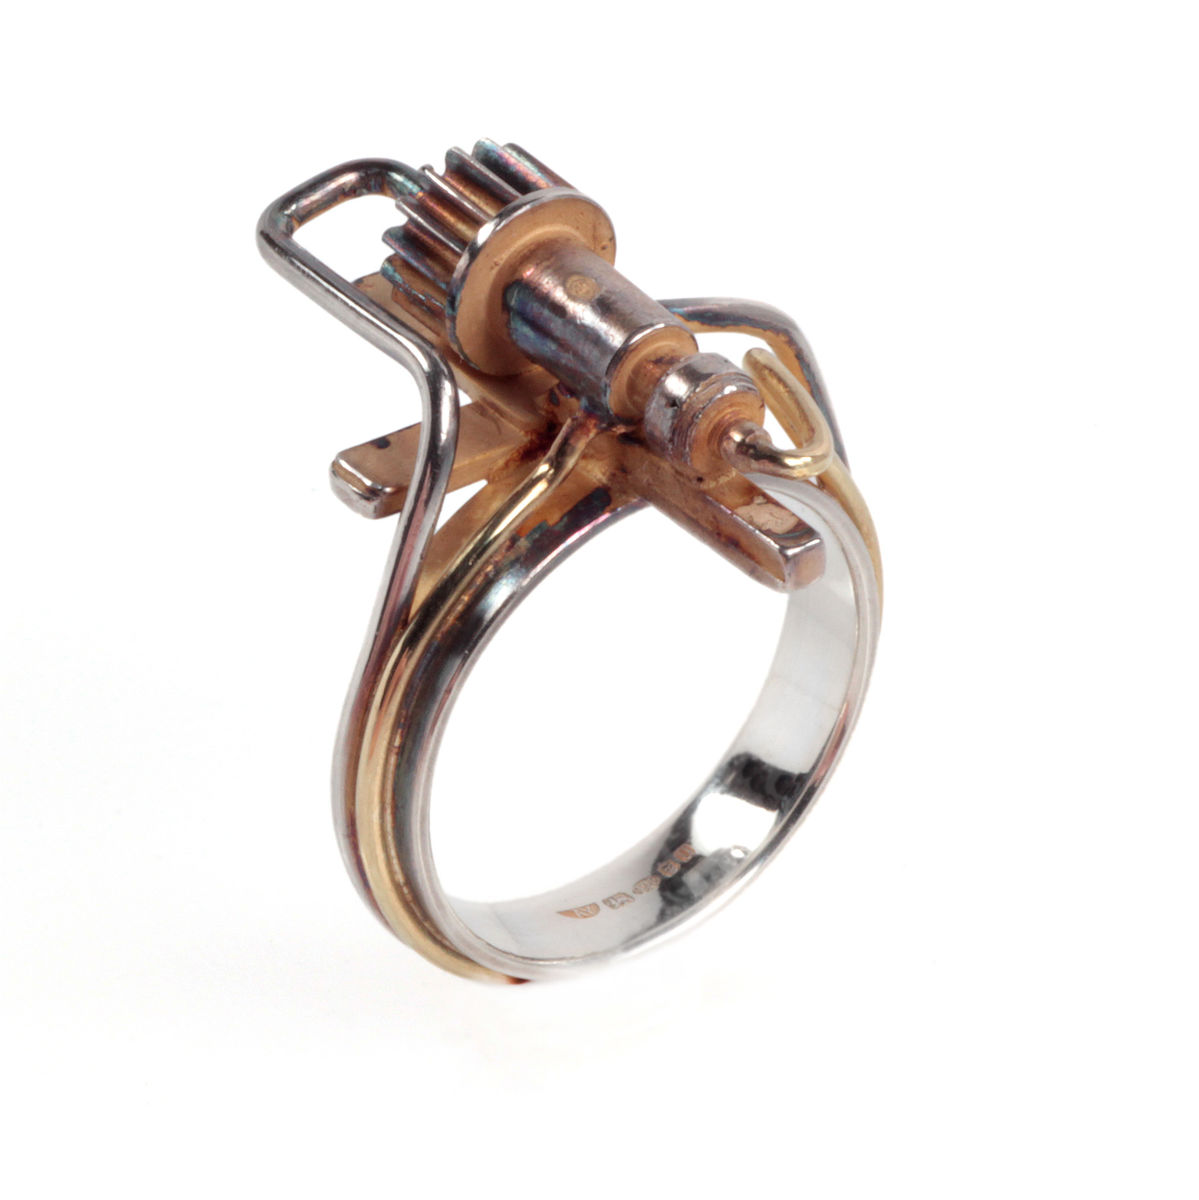 D8B Machina Ring - product images  of